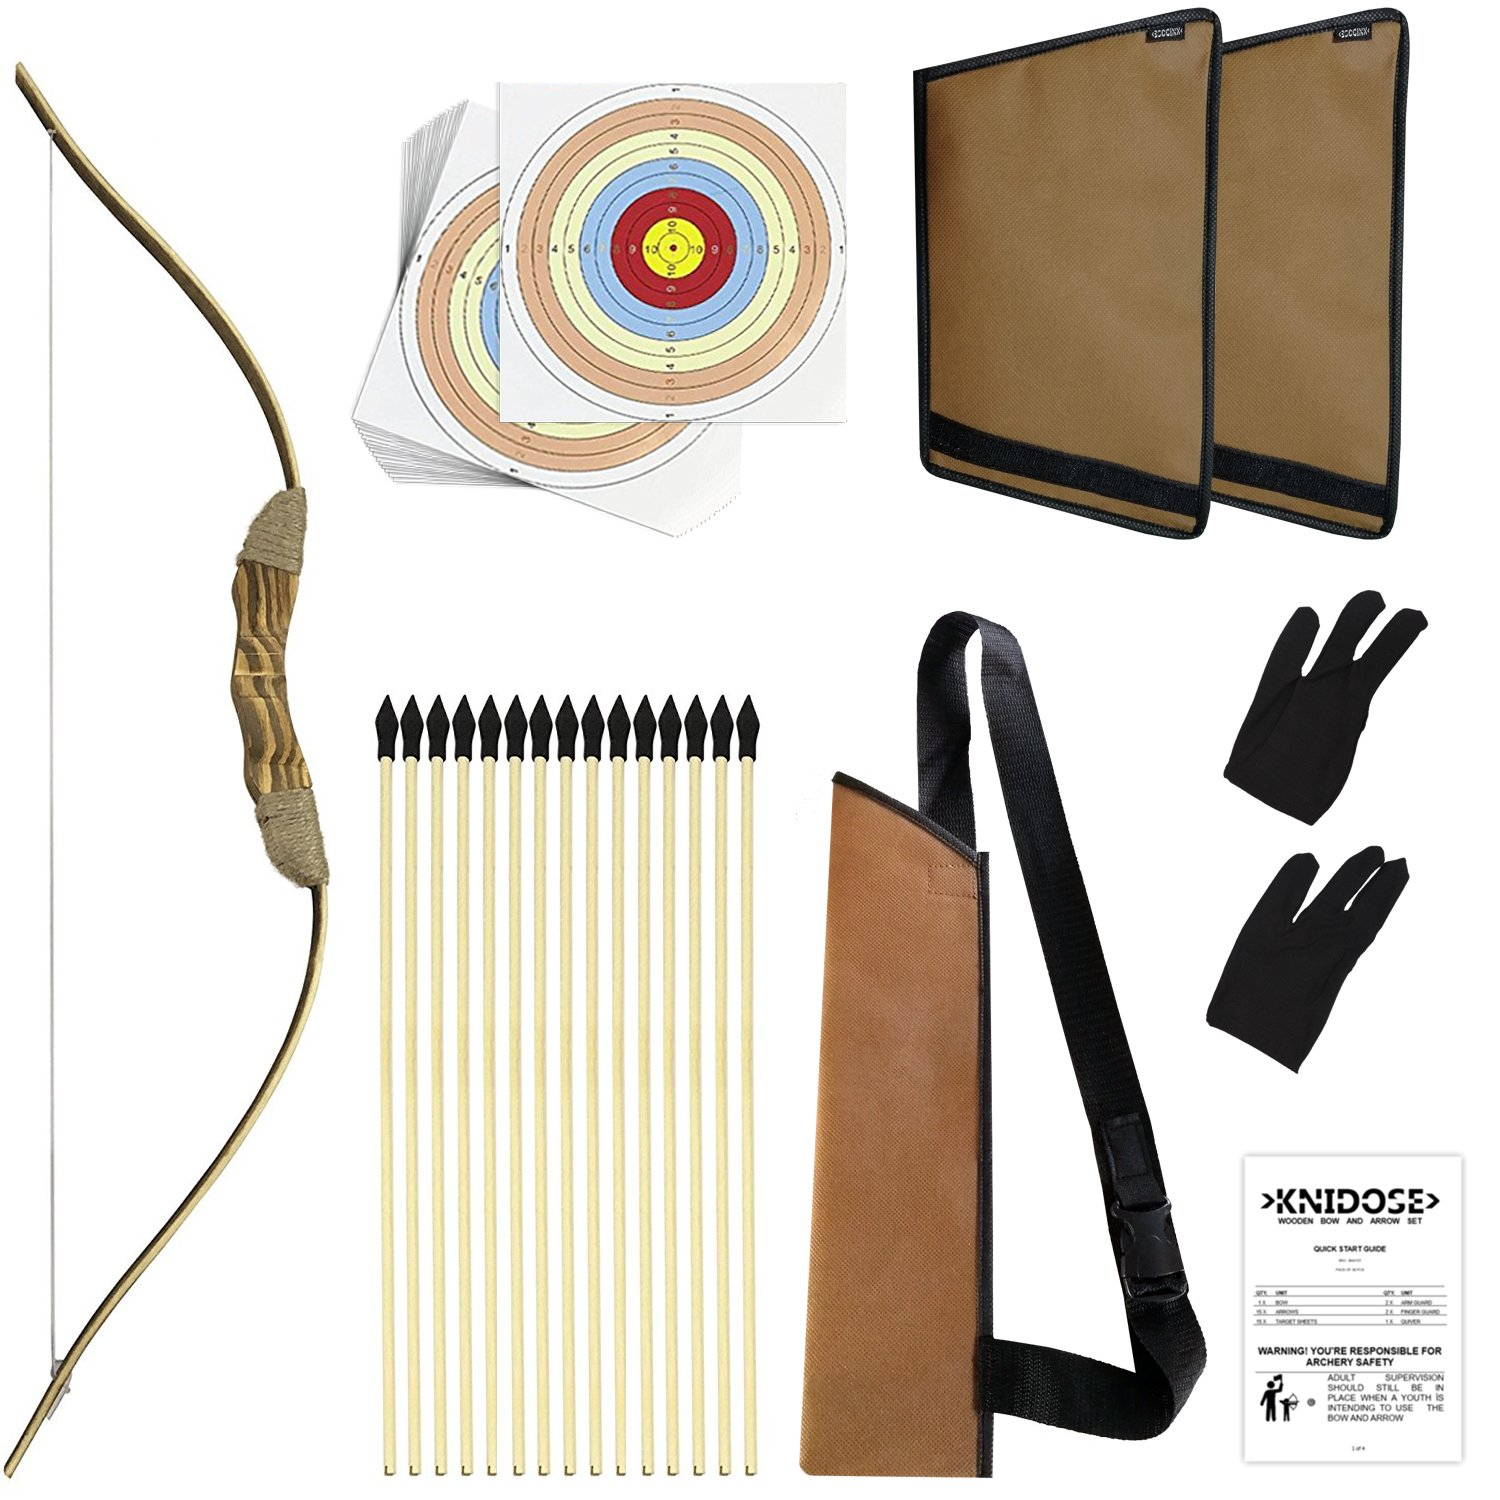 Knidose Beginners Bow Arrow Kids | 36 Pieces Safe Archery Set Outdoor Indoor Fun, Handcrafted Wooden 1 Bow, 15 Arrows, 15 Target Sheets, 1 Quiver, 2 Arm 2 Finger Guards Shooting Toy by Knidose (Image #1)